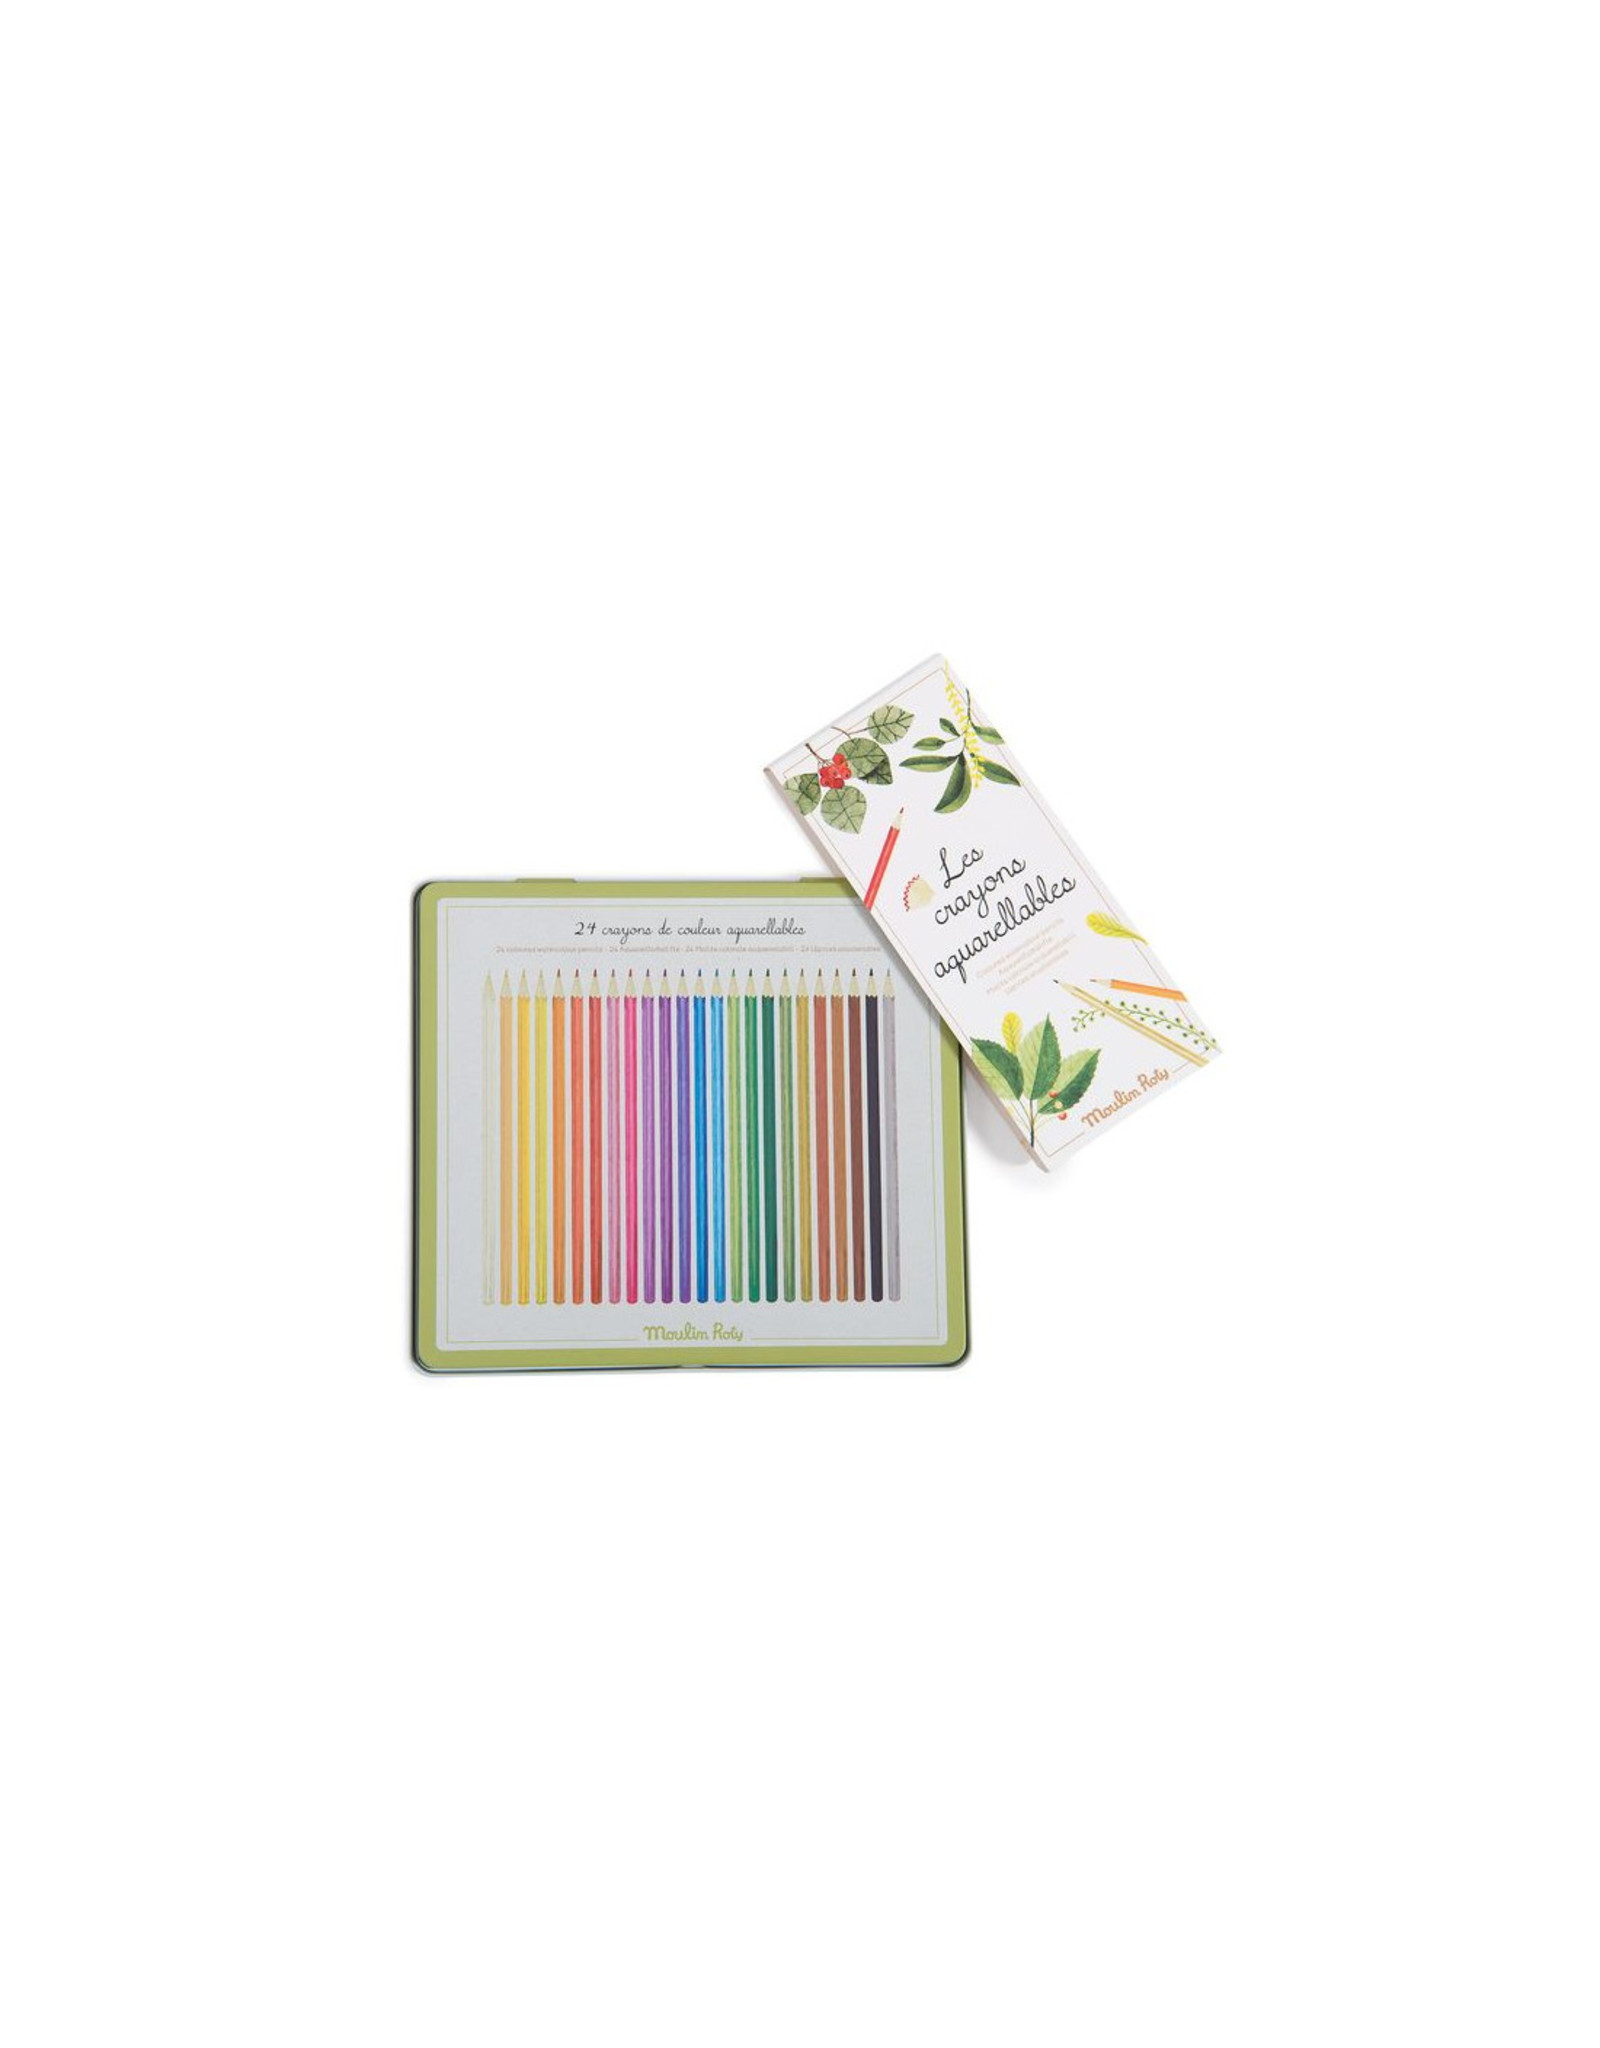 Moulin Roty Coloured watercolour pencils